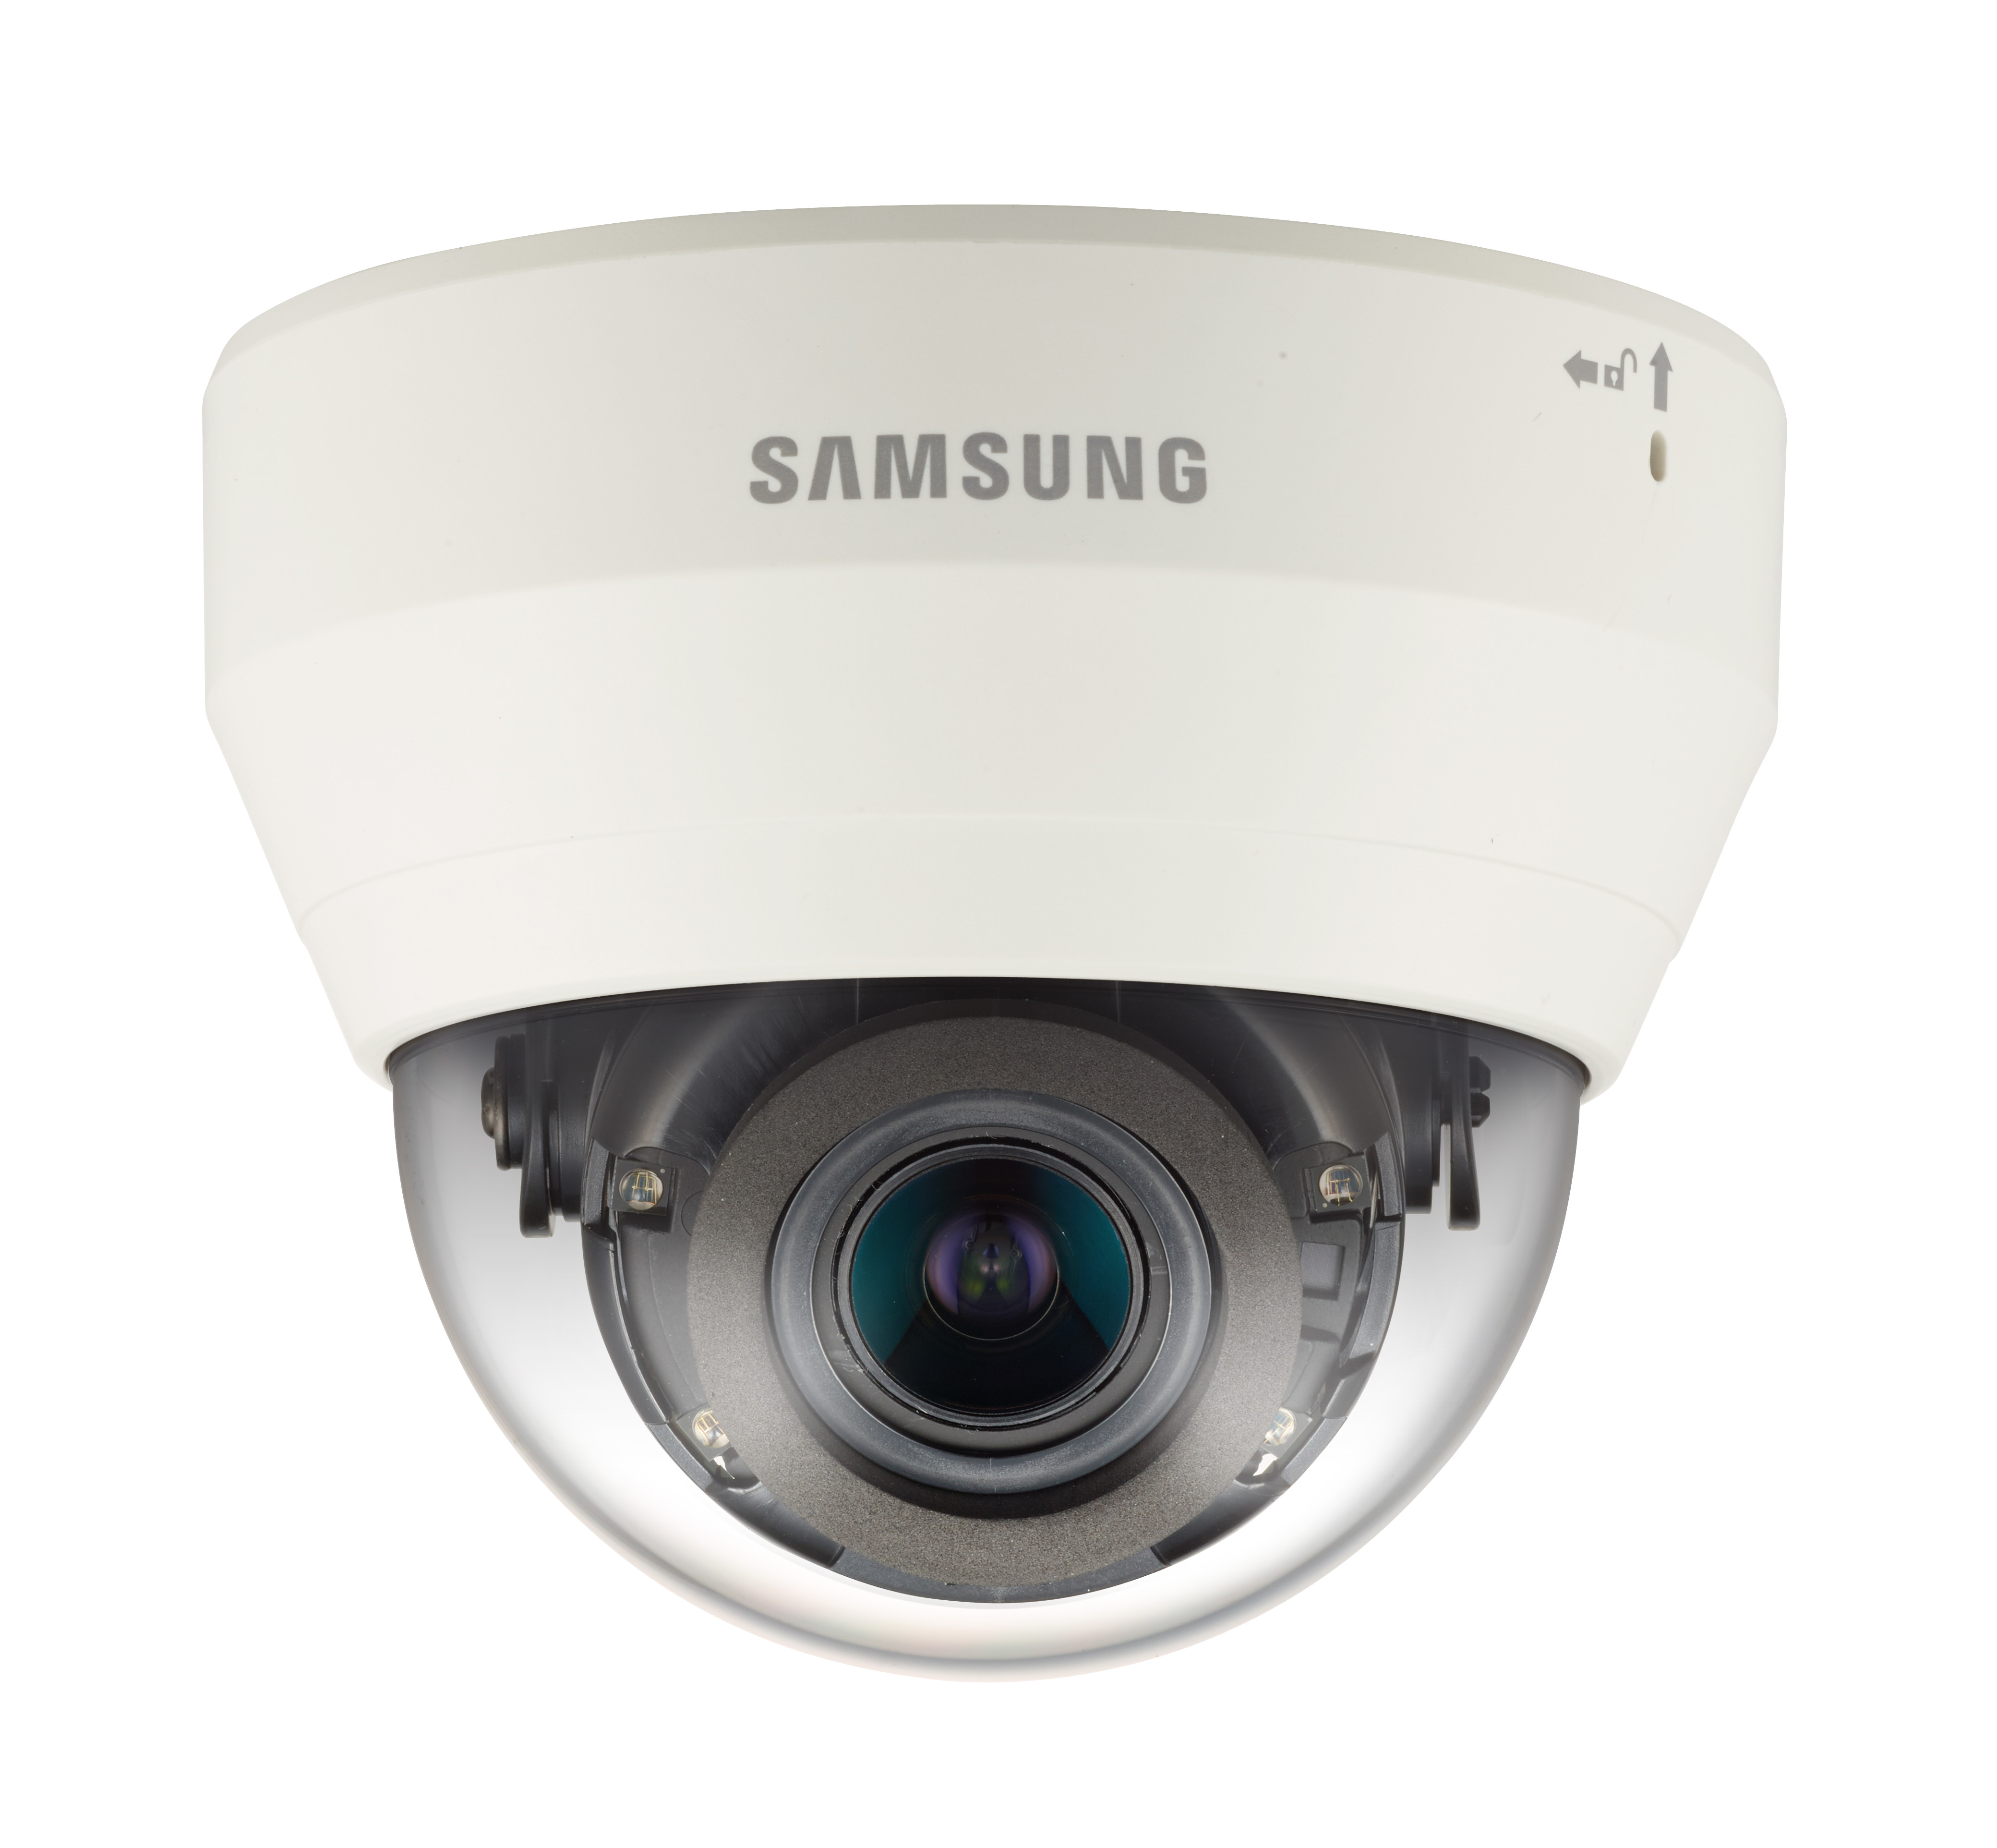 Samsung QND-6070R 2MP